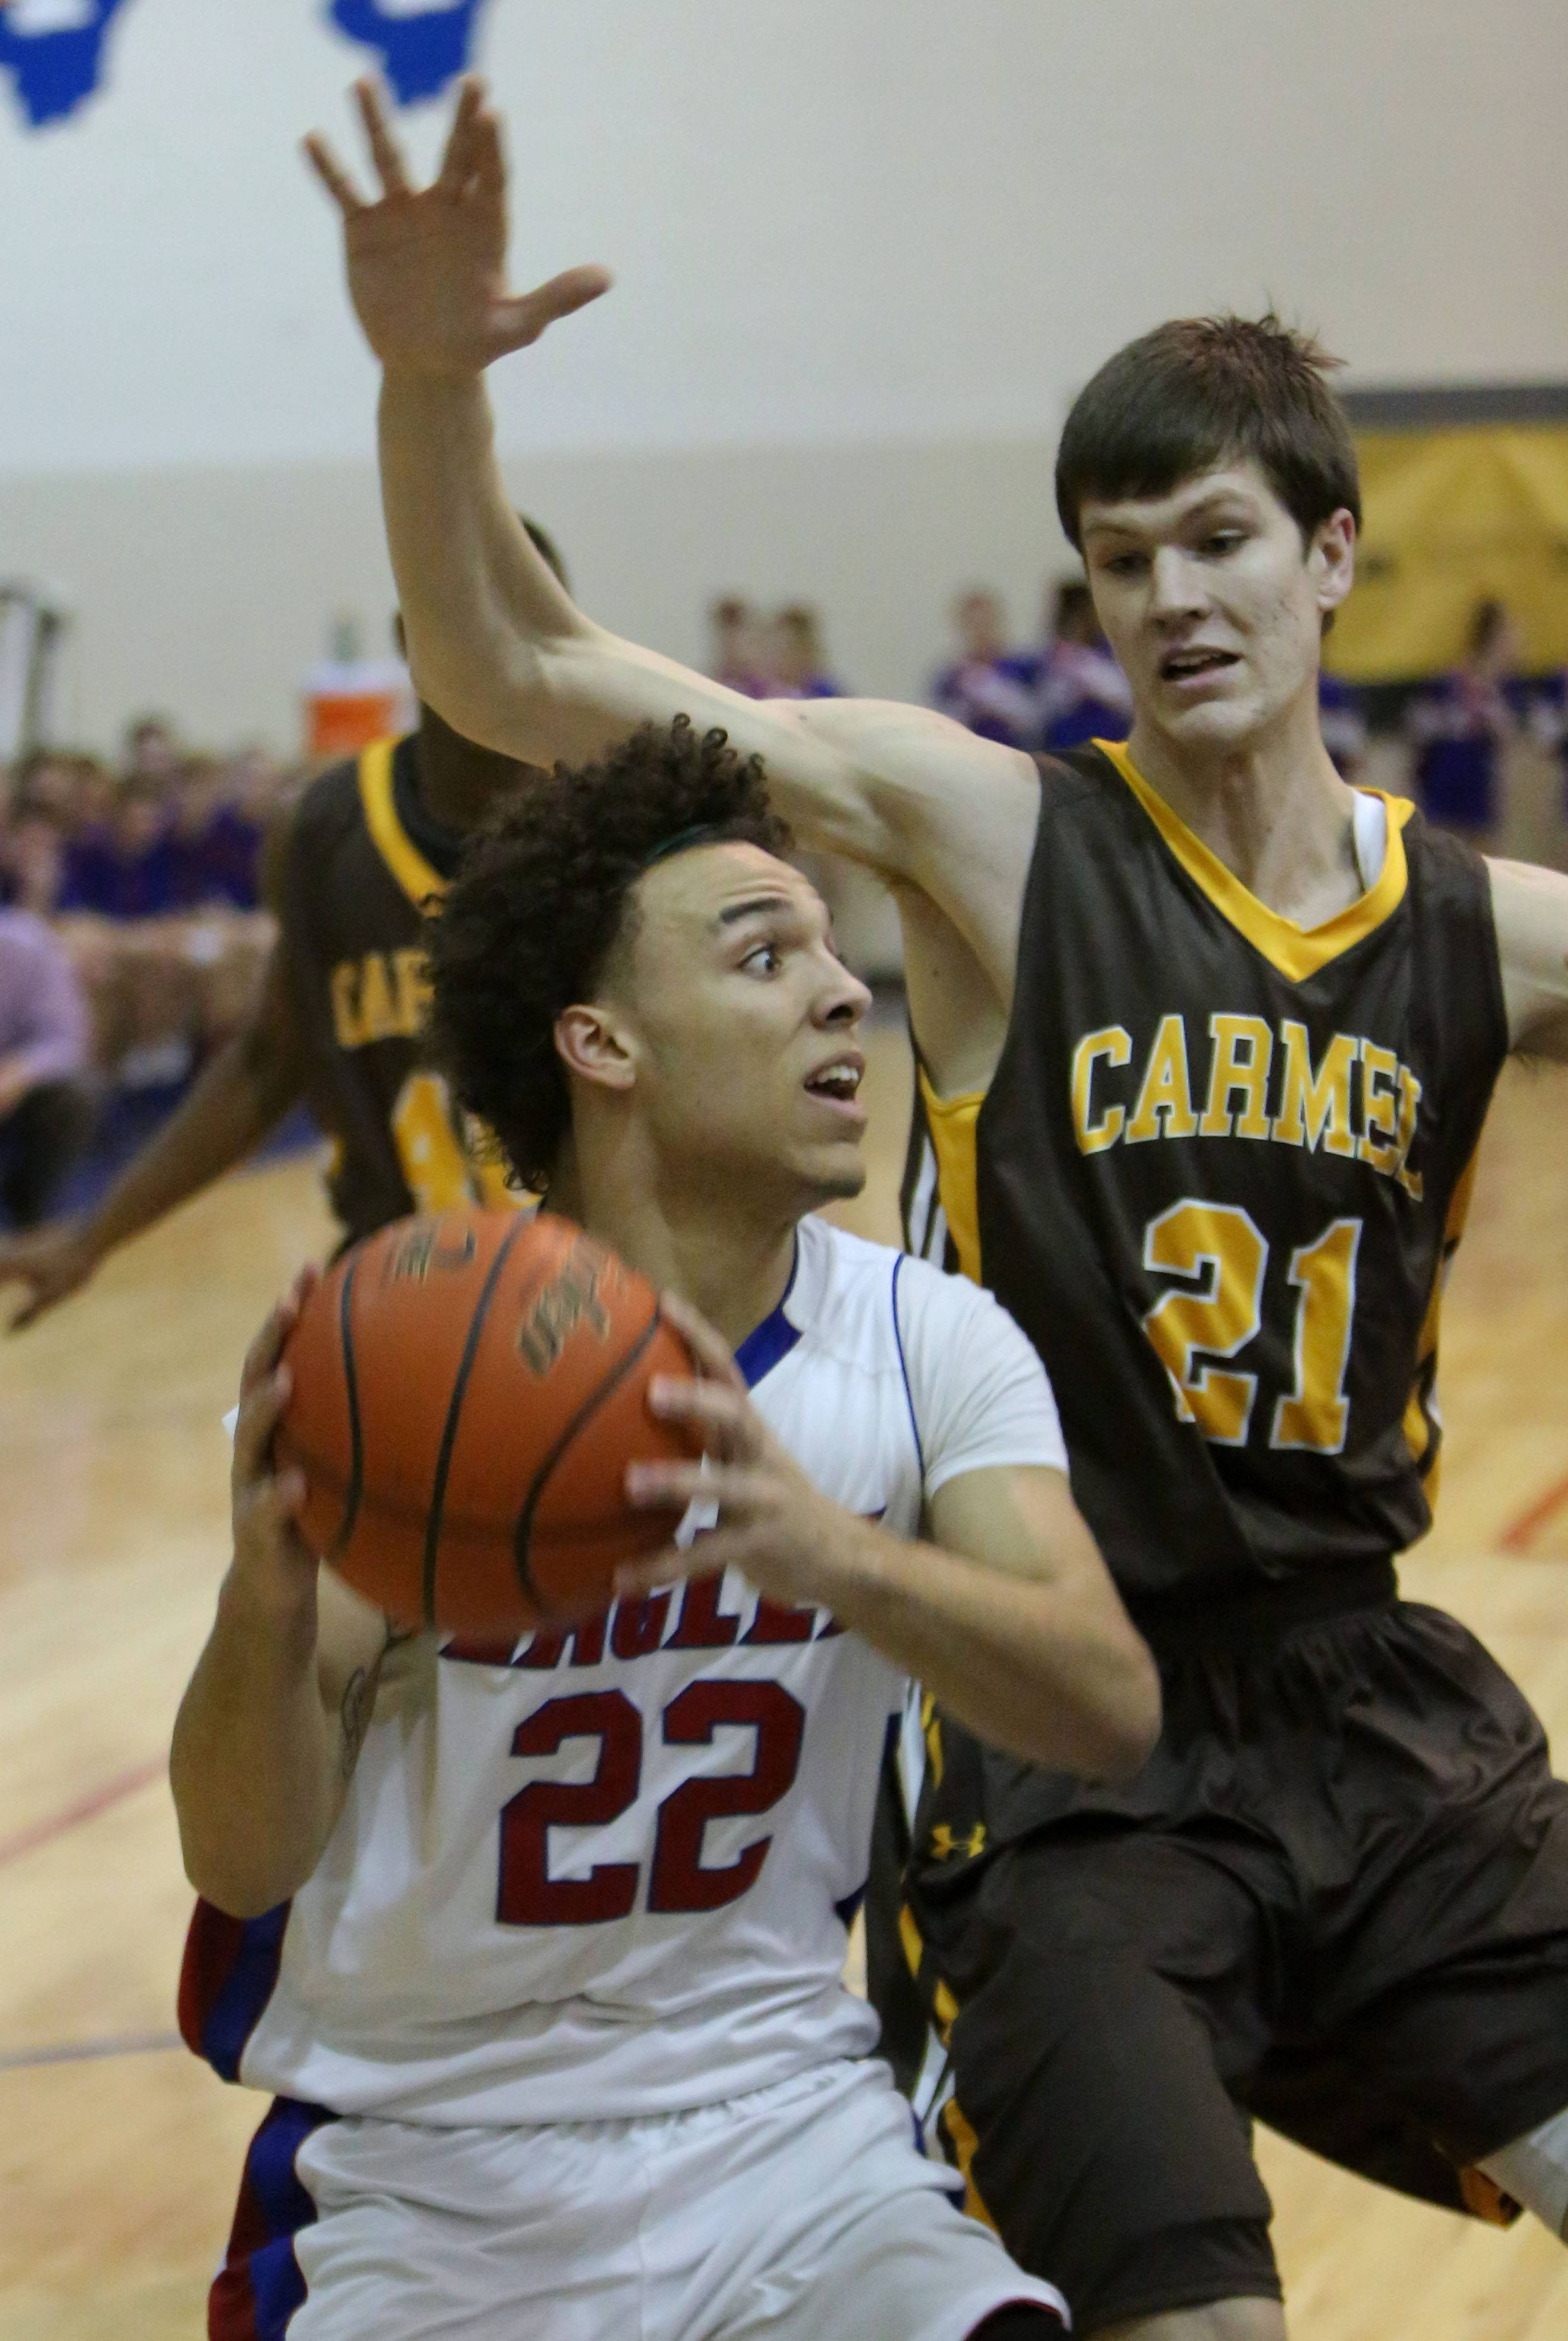 Lakes' Tramone Hudson, left, drives to the hoop on Carmel's Jack George on Monday night at Lakes.